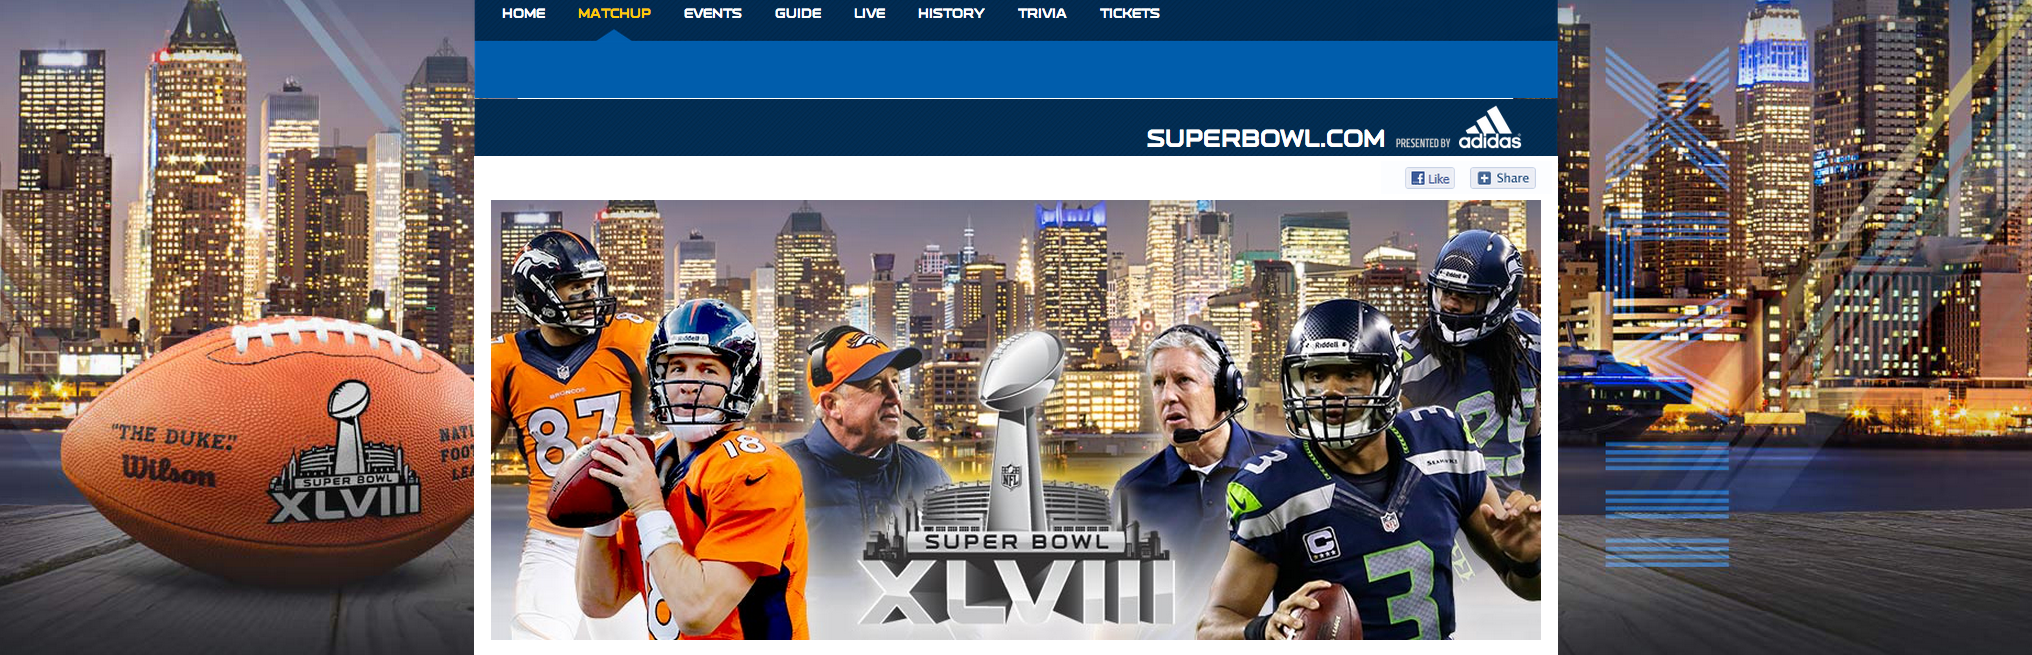 nfl.com/superbowl